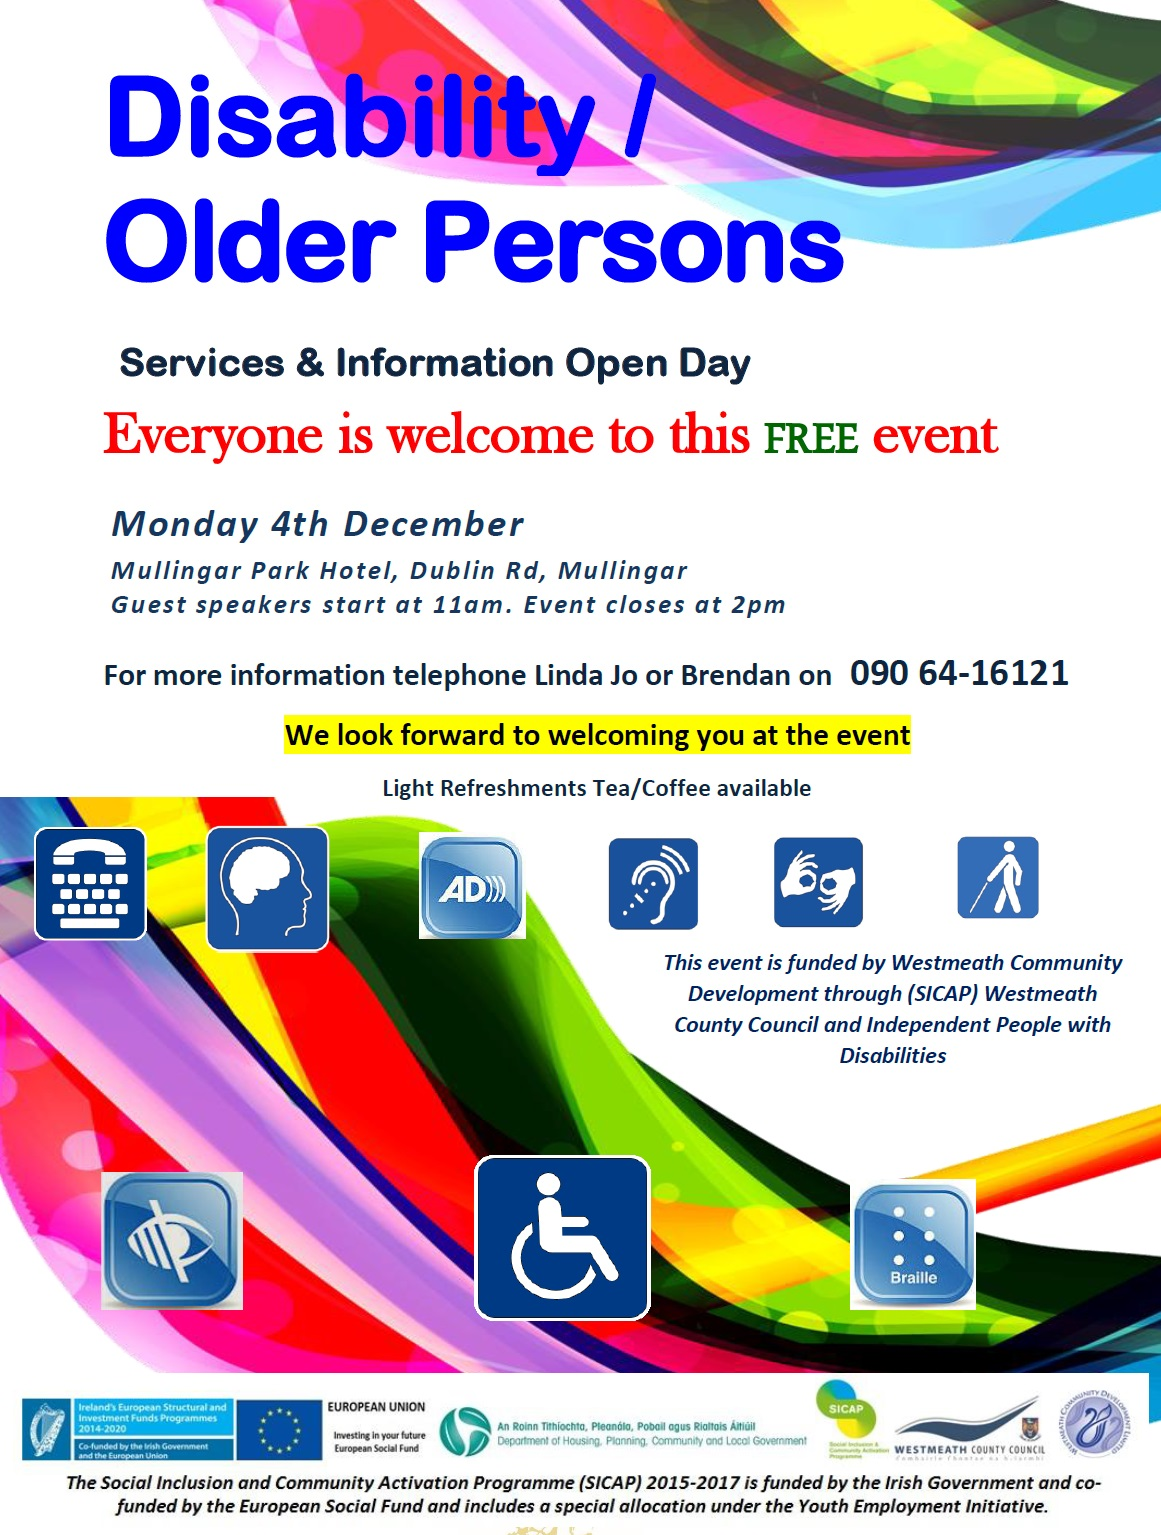 Disability Event Poster 2017 revised oct 17